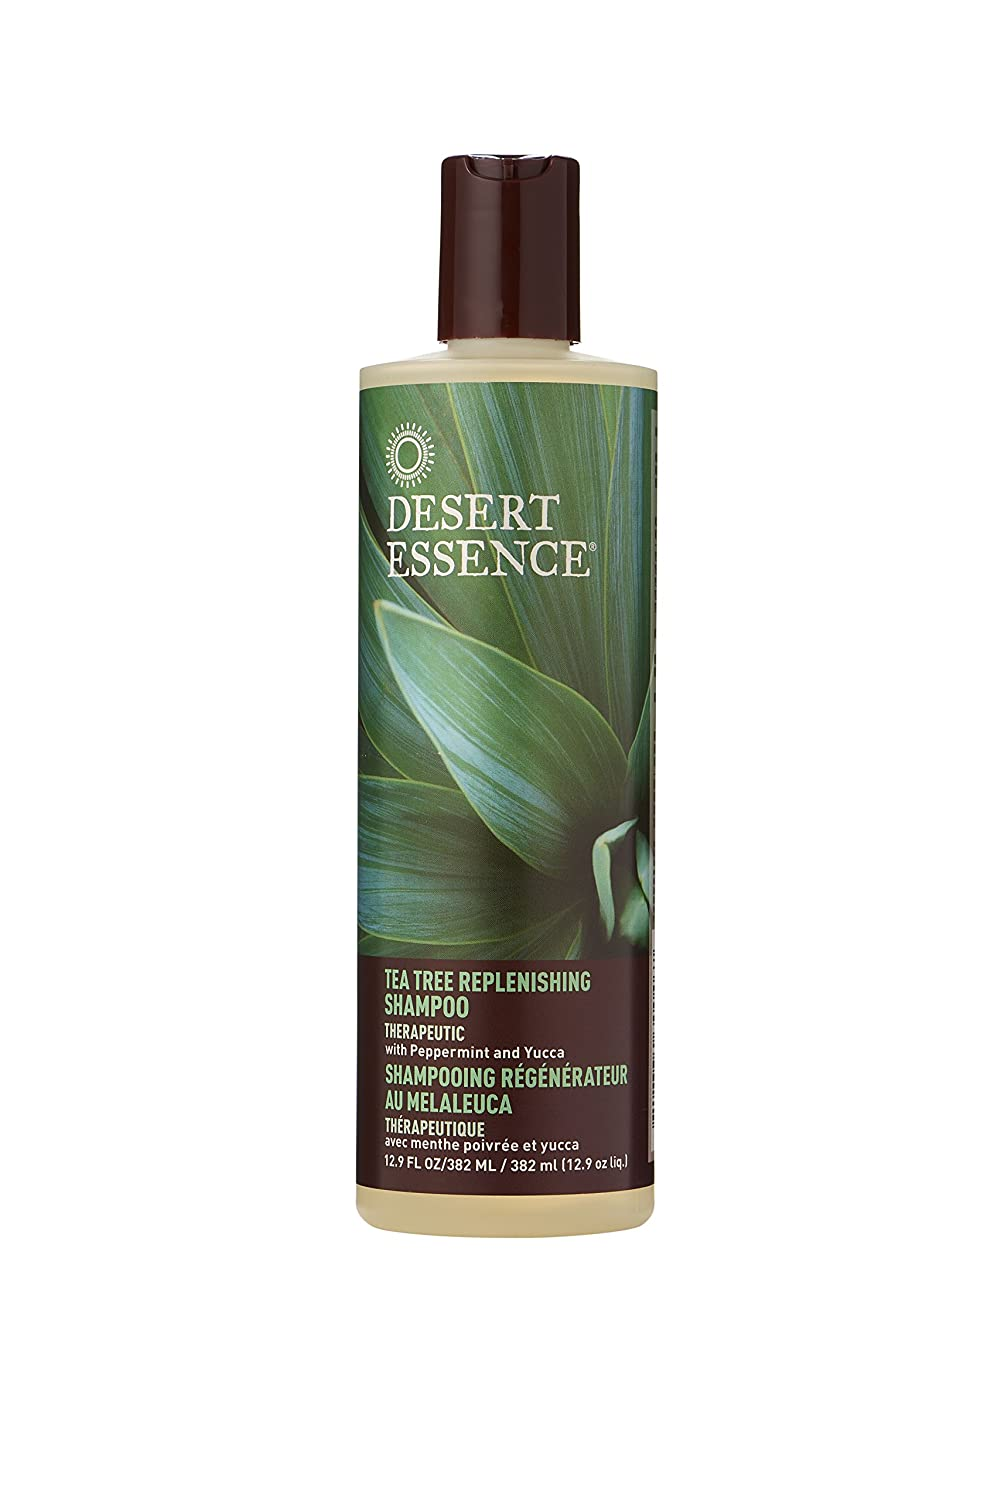 Desert Essence Tea Tree Replenishing Shampoo and Conditioner Bundle - 12.7 Fl Ounce - Therapeutic - Peppermint & Yucca - All Skin Types - Tea Tree Oil - Antibacterial - Restore & Nurture Hair